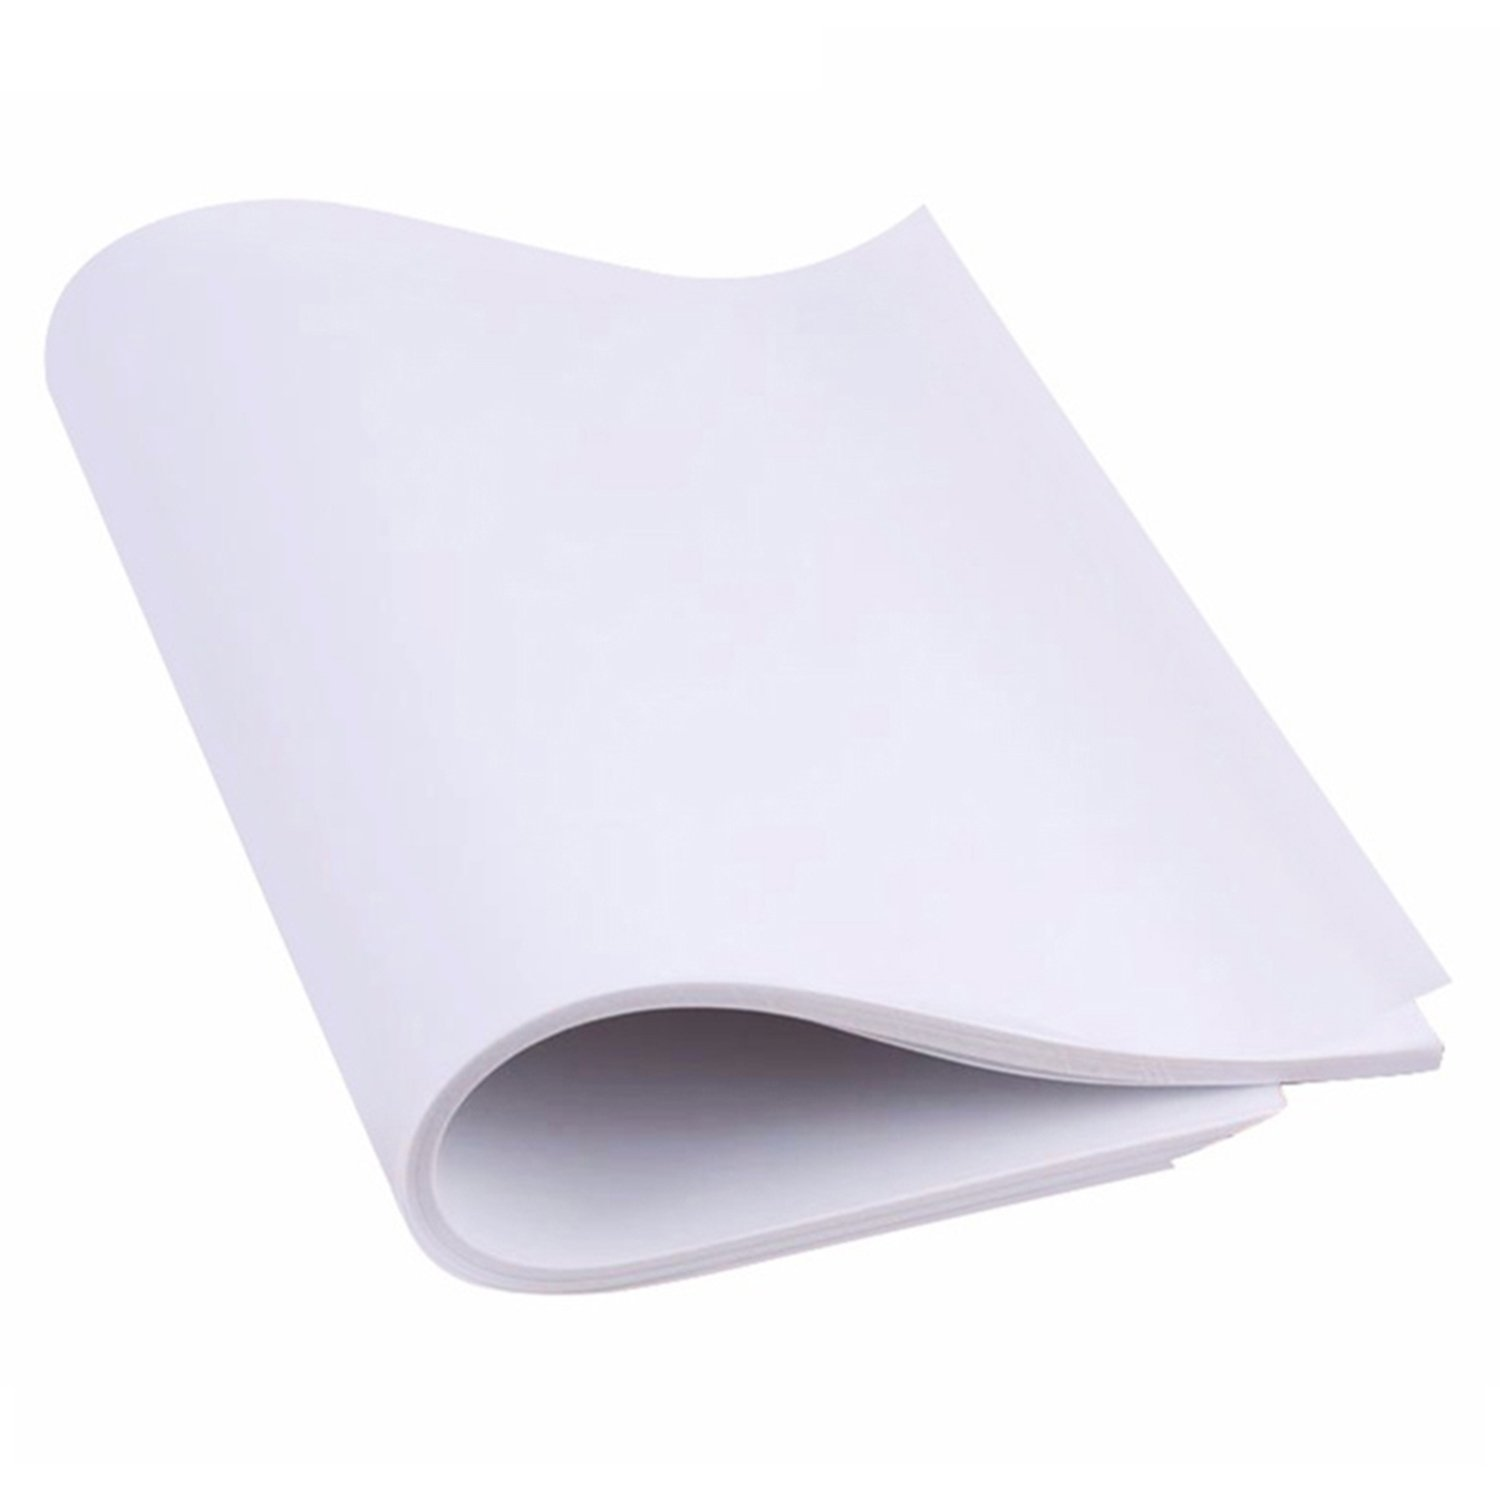 100 Sheets 70gsm Translucent Vellum Tracing Paper - Traditional Comic Sketching Drawing Paper - 8.3 x 11.7 Inches Looneng 4336943391